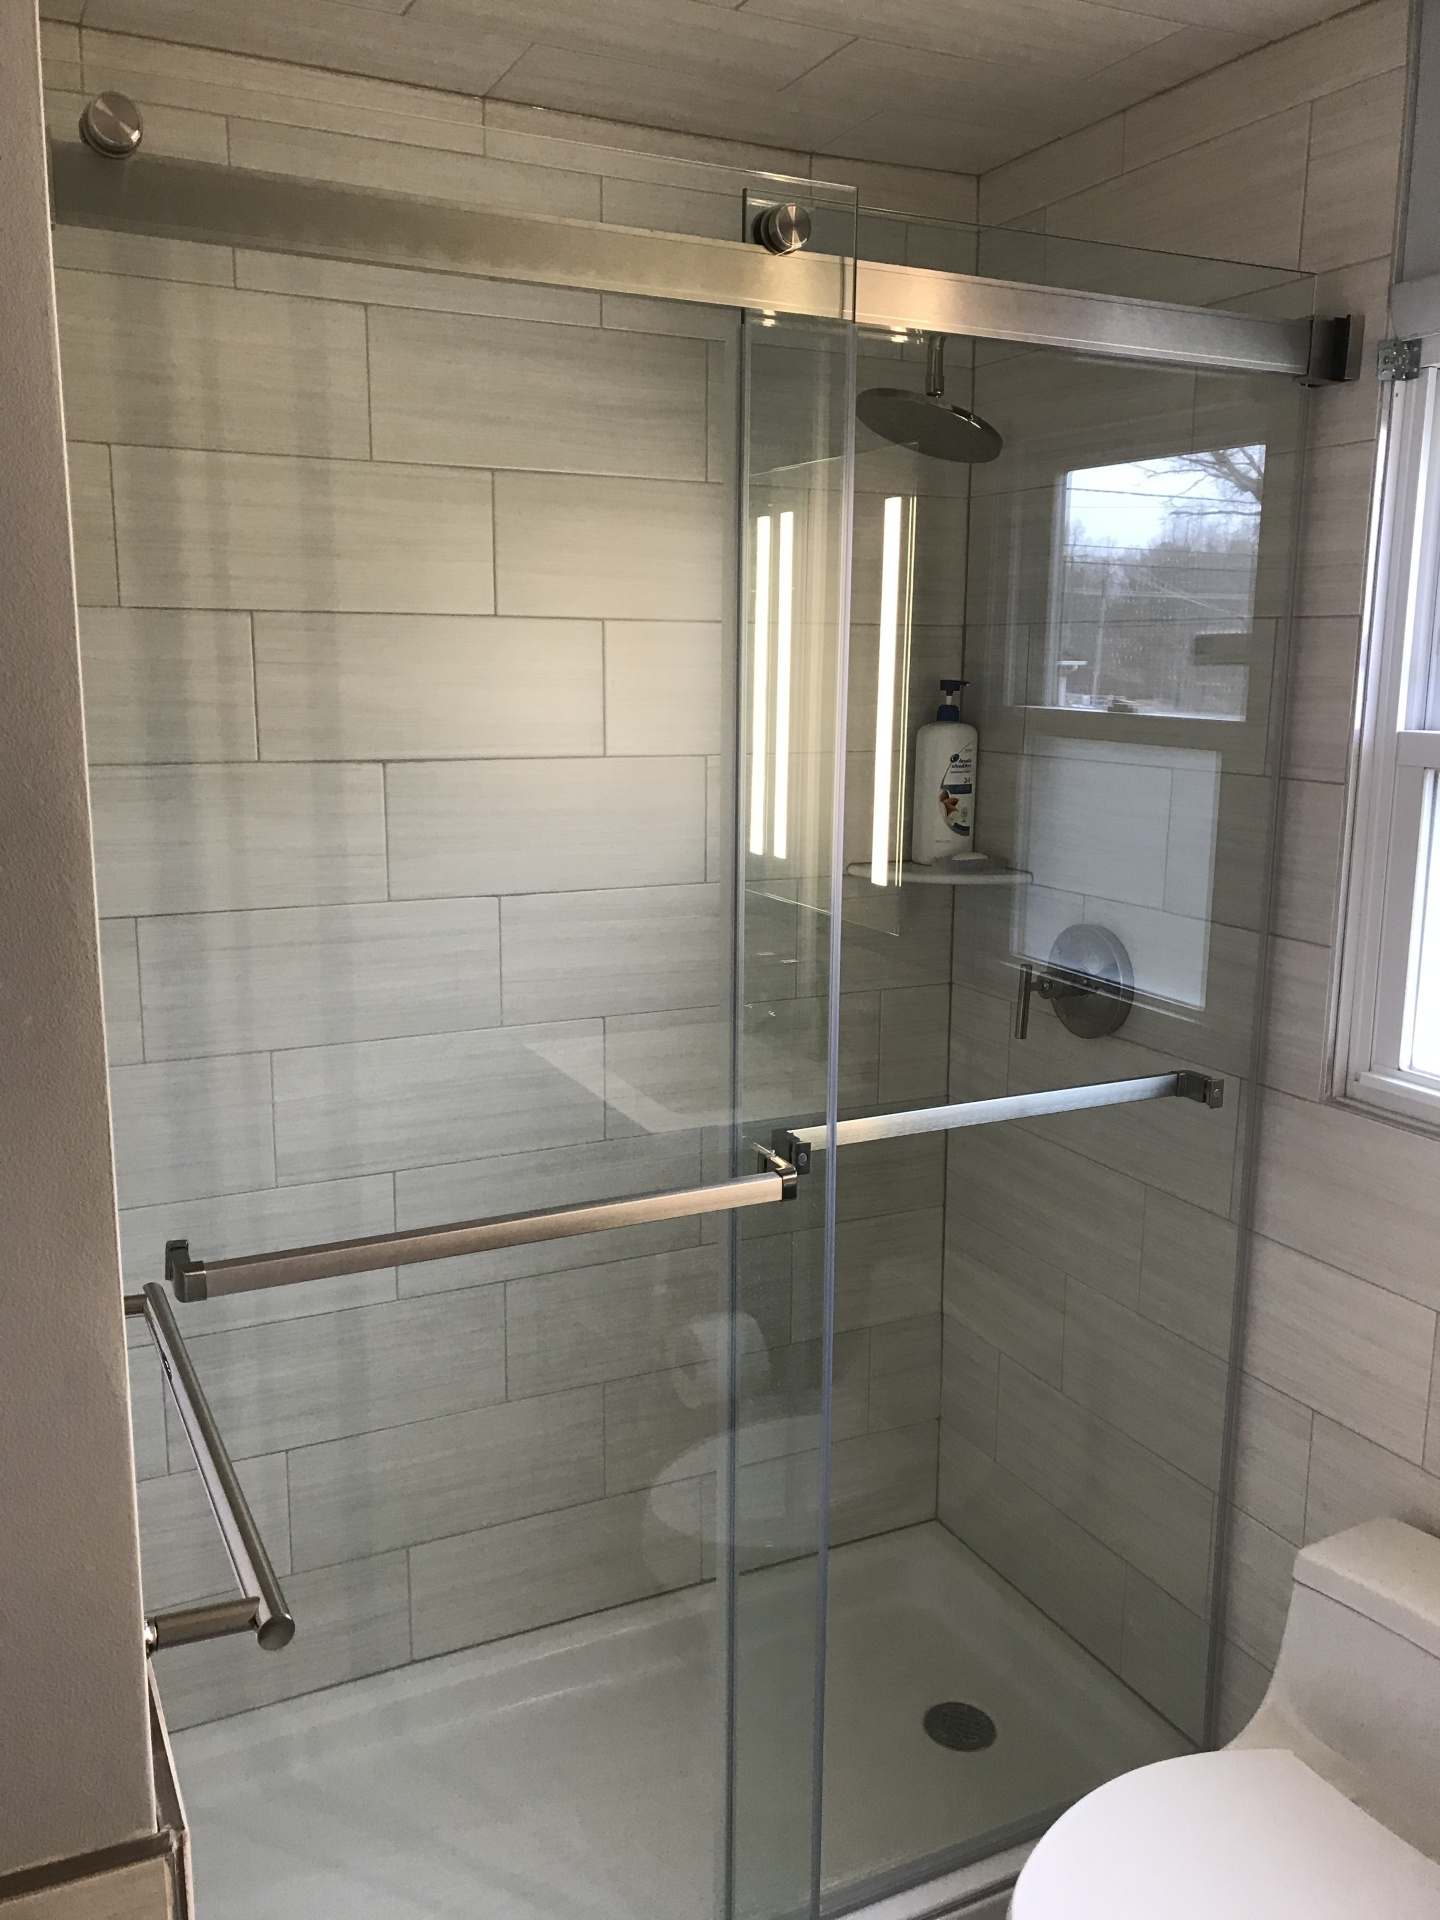 All Shower Doors Installed